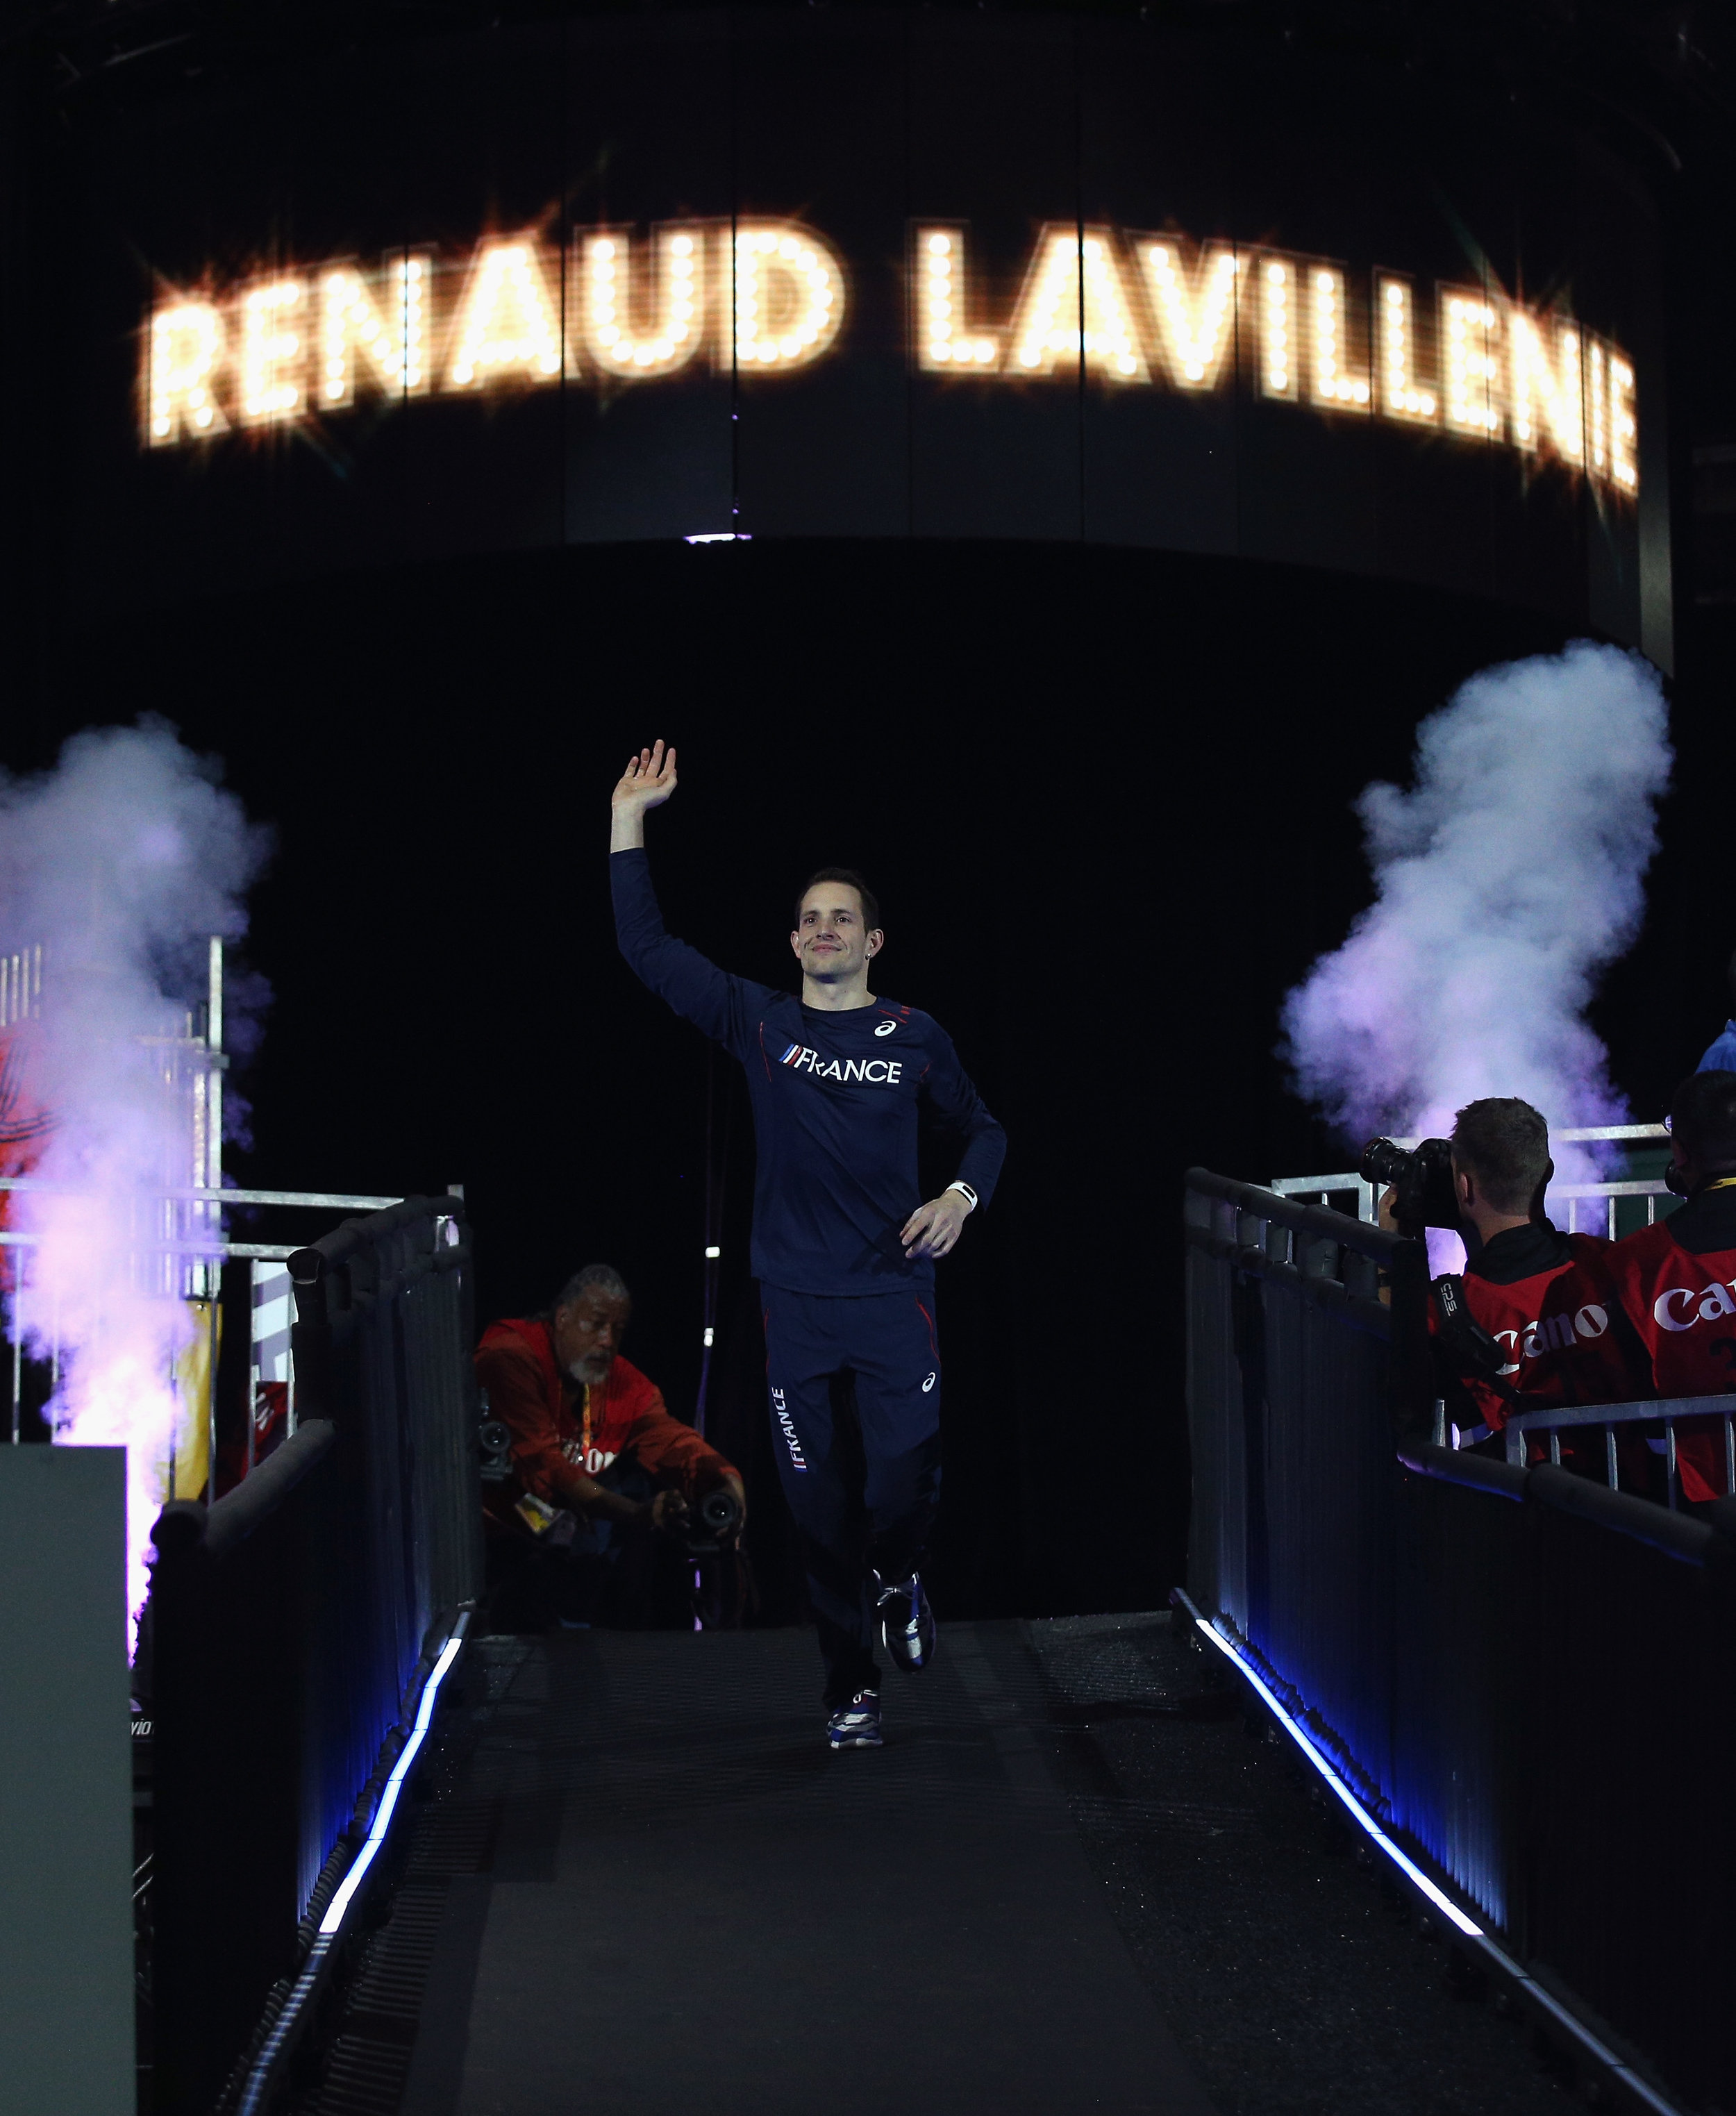 London 2012 gold medalist and current world record-holder Renaud Lavillenie of France making his into to the 2016 indoor worlds // Getty Images for IAAF